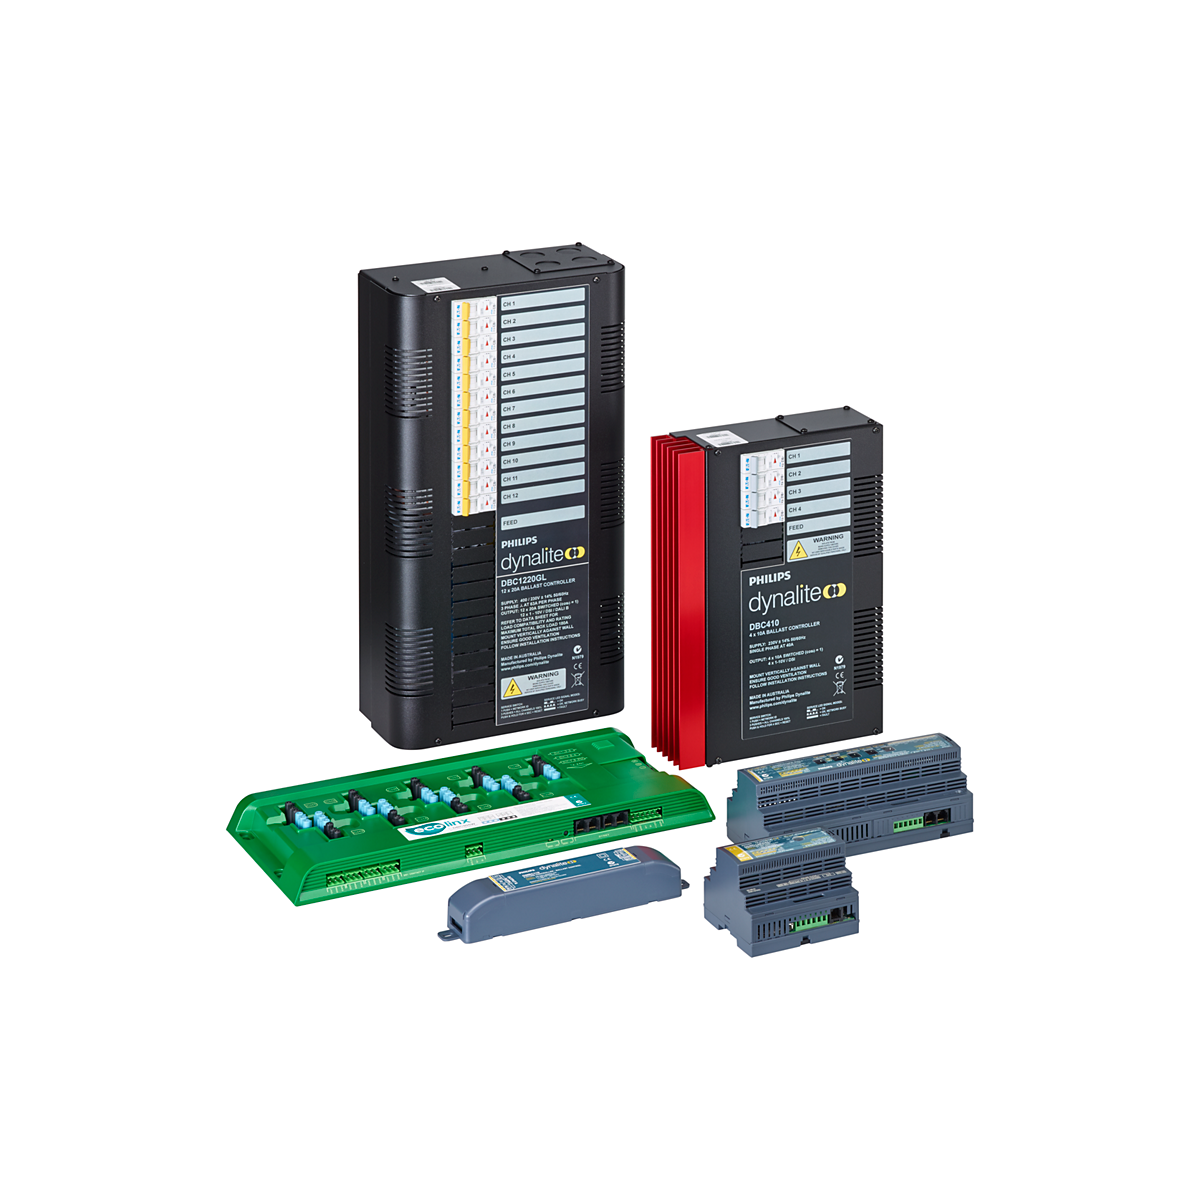 Dynalite Signal Dimmer Controllers